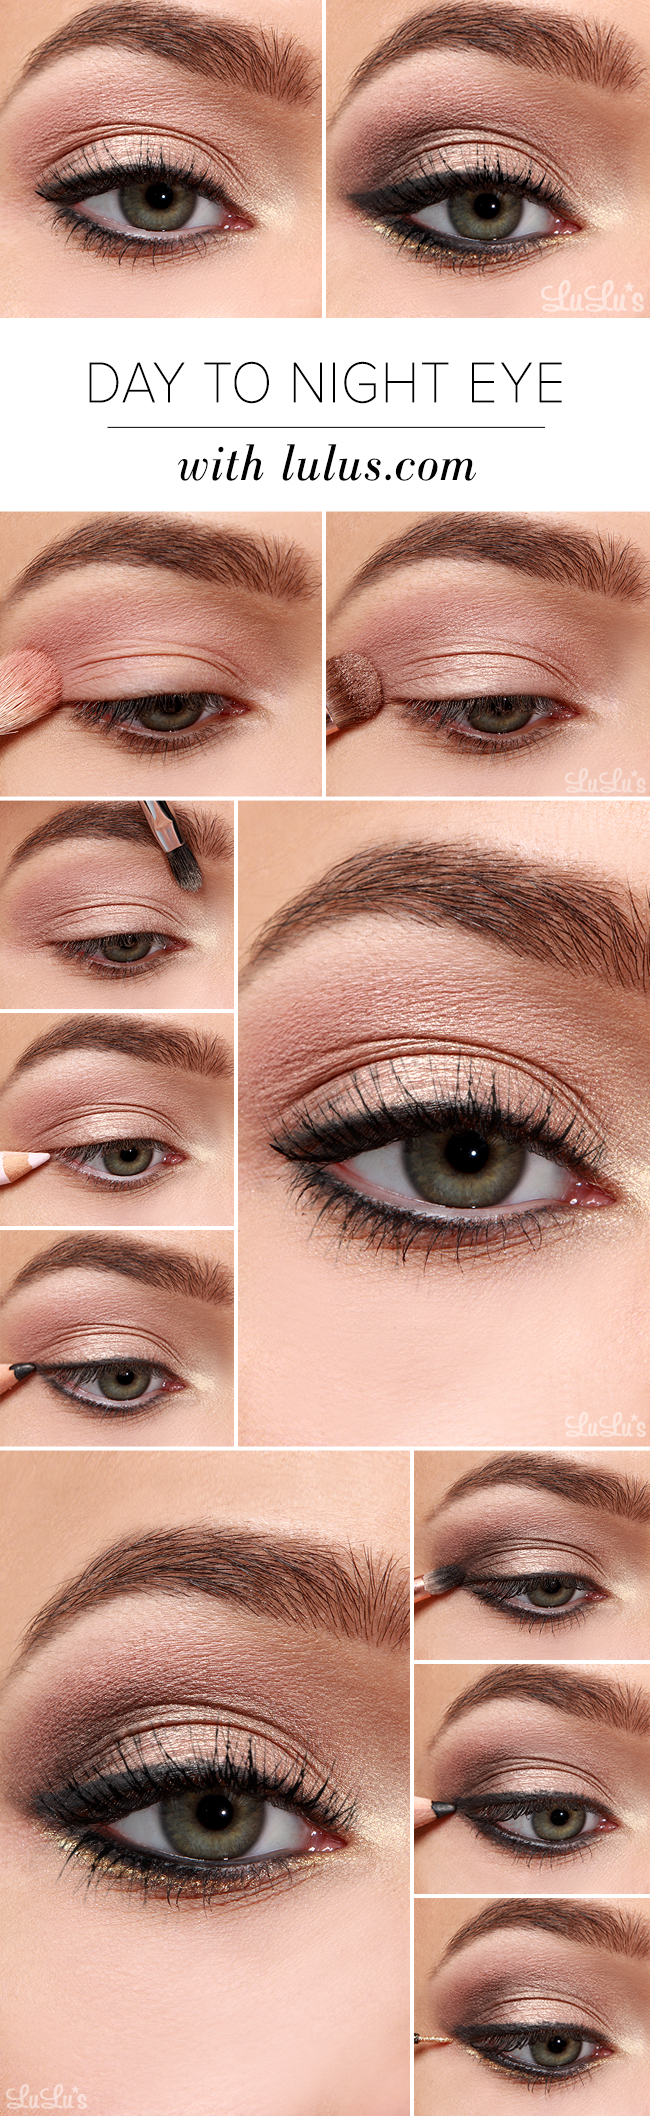 How To Do Day To Night Eye Shadow Makeup 1